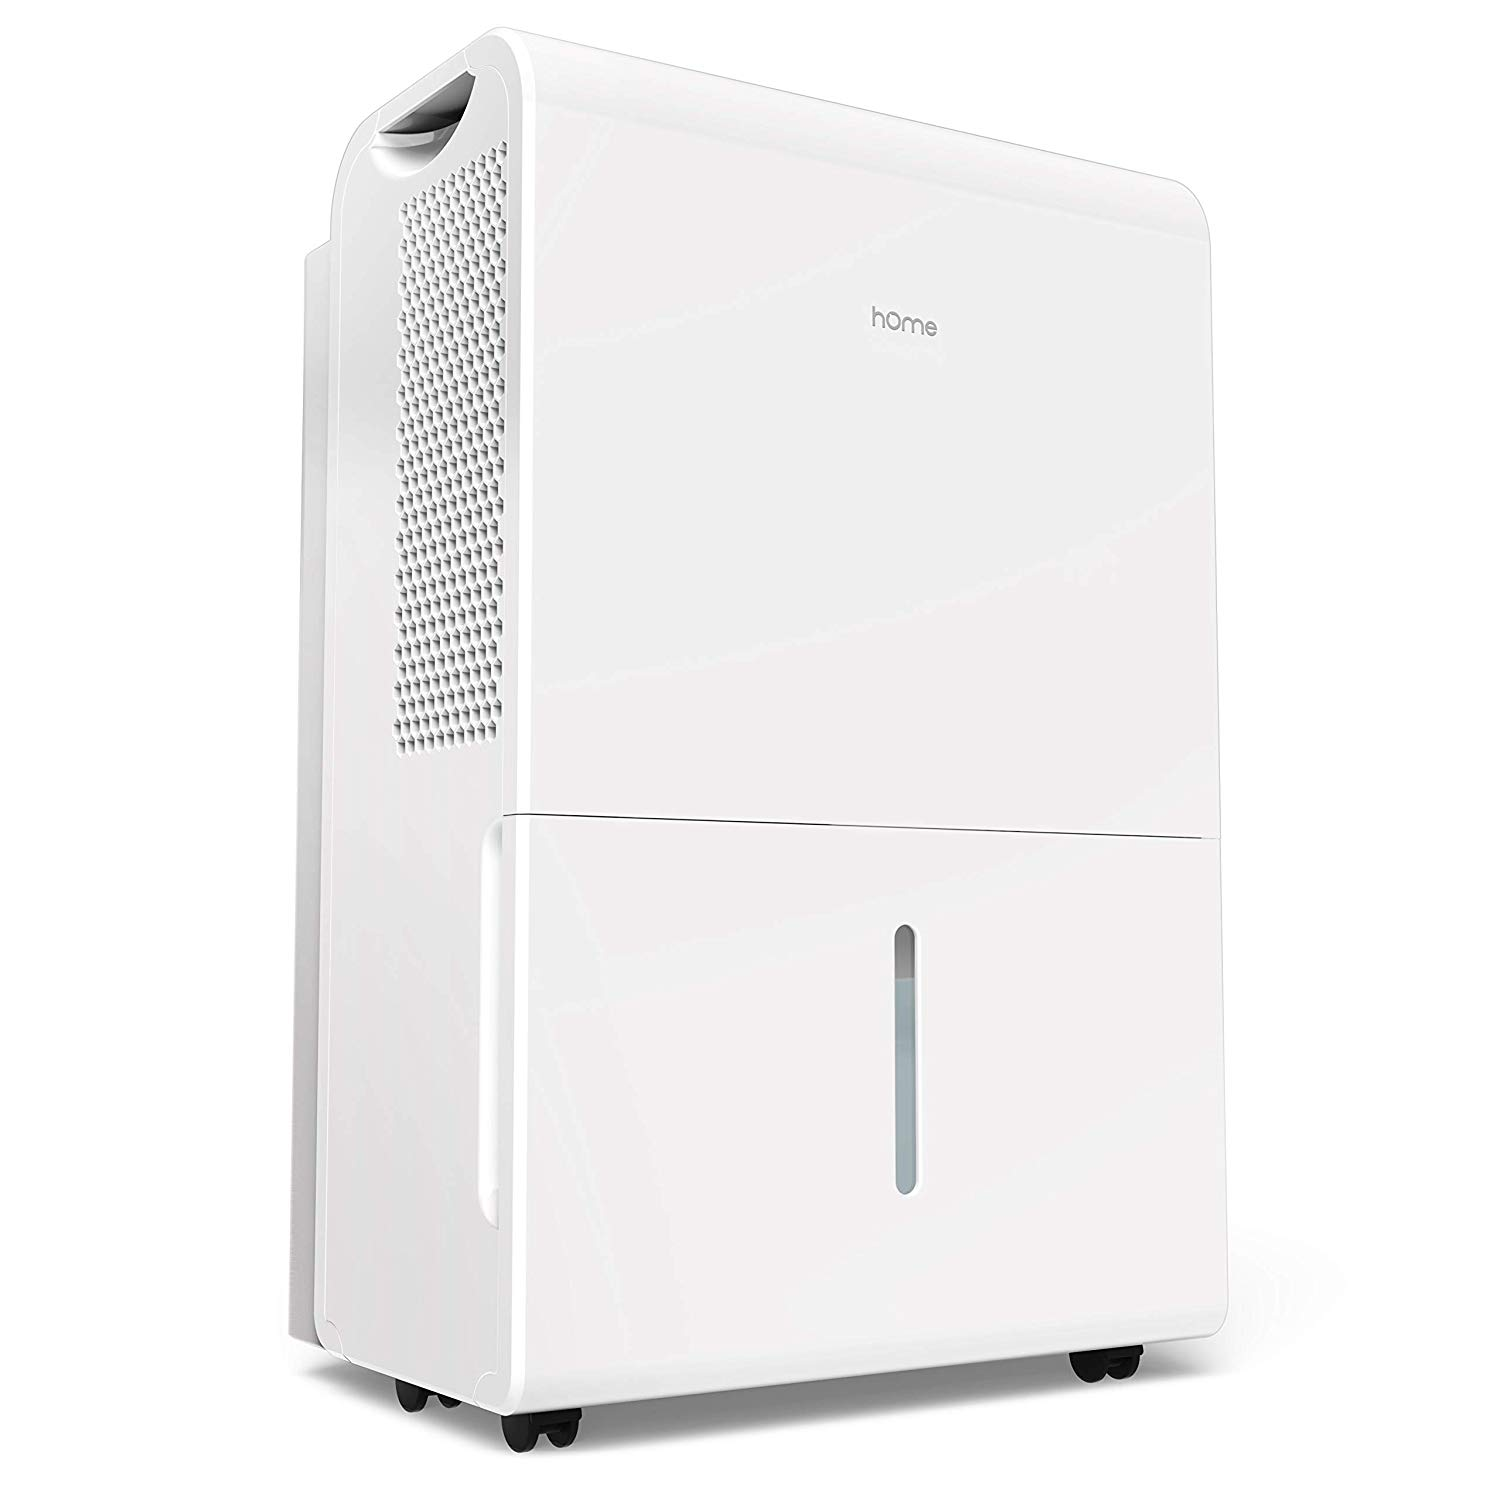 Best Dehumidifier for Mold: hOmeLabs